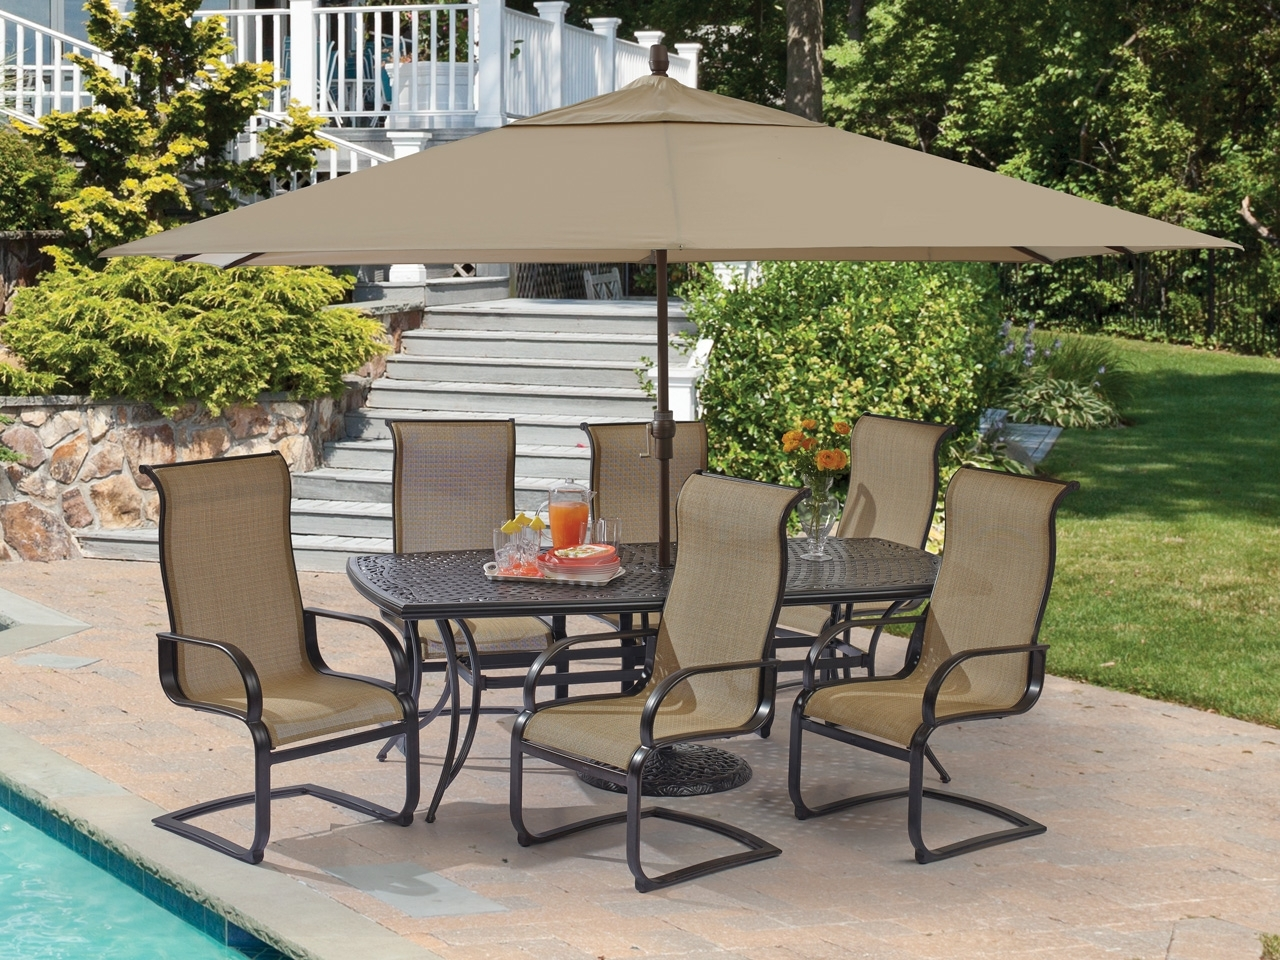 Big Lots Patio Umbrellas For Popular 8 Piece Patio Dining Set Furniture Walmart Lowes Big Lots Outdoor (View 14 of 20)